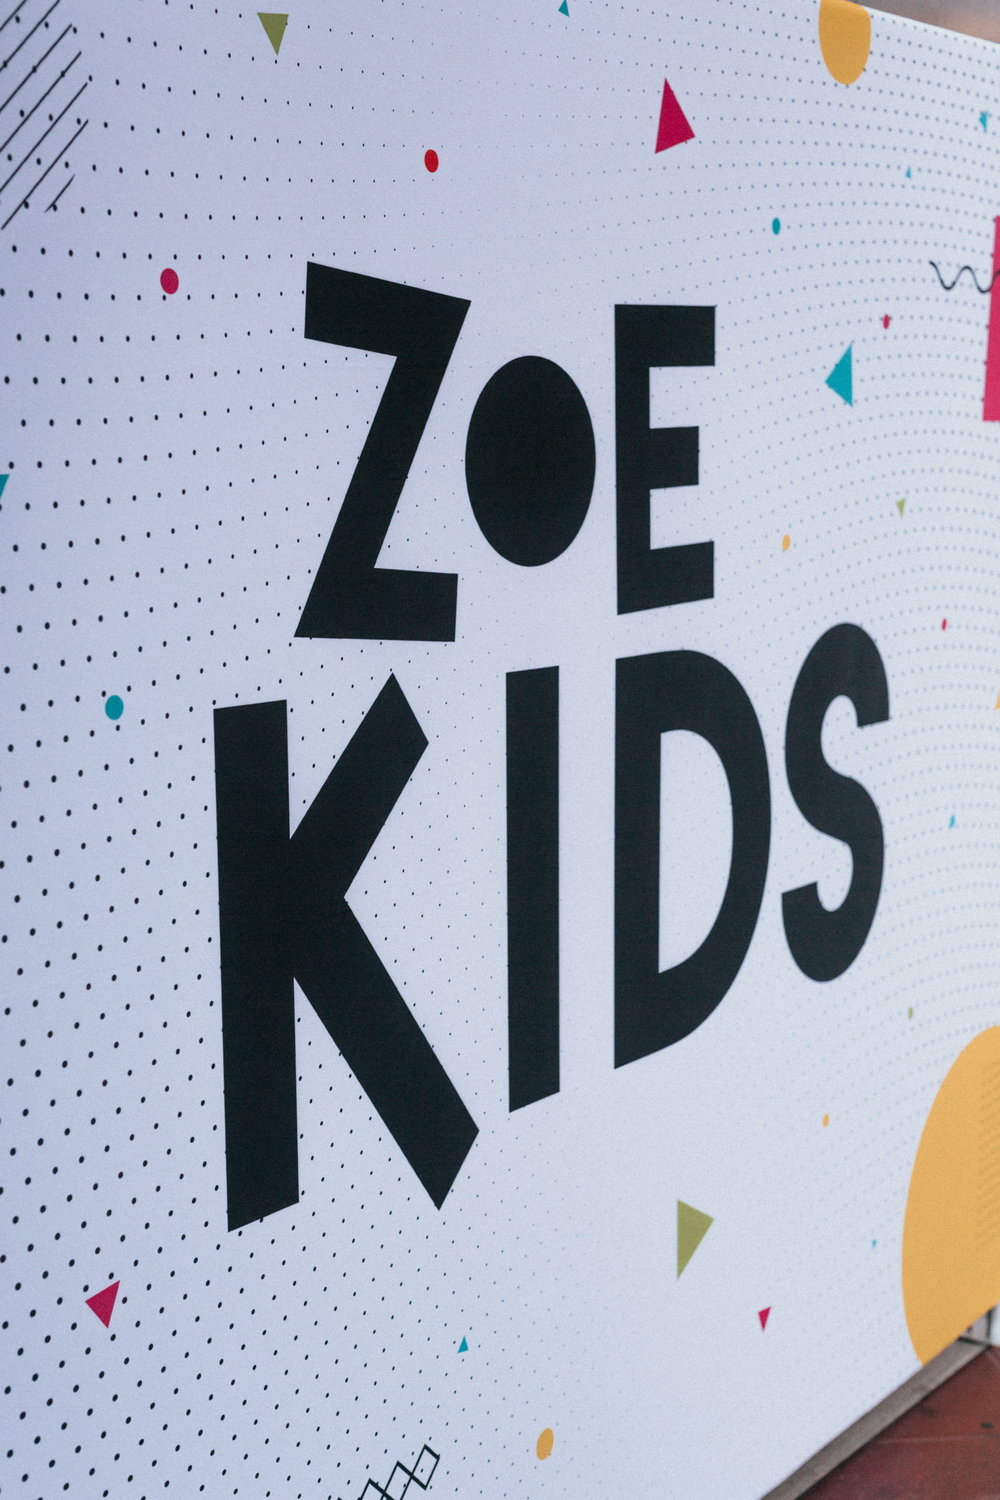 ZOE KIDS   At each of our weekend services we offer ZOE KIDS services for children 6 months-5th grade. We create a safe environment for children to learn the truths of the Bible and have fun worshiping Jesus. If you have any questions about ZOE Kids, please contact info@zoechurch.org.